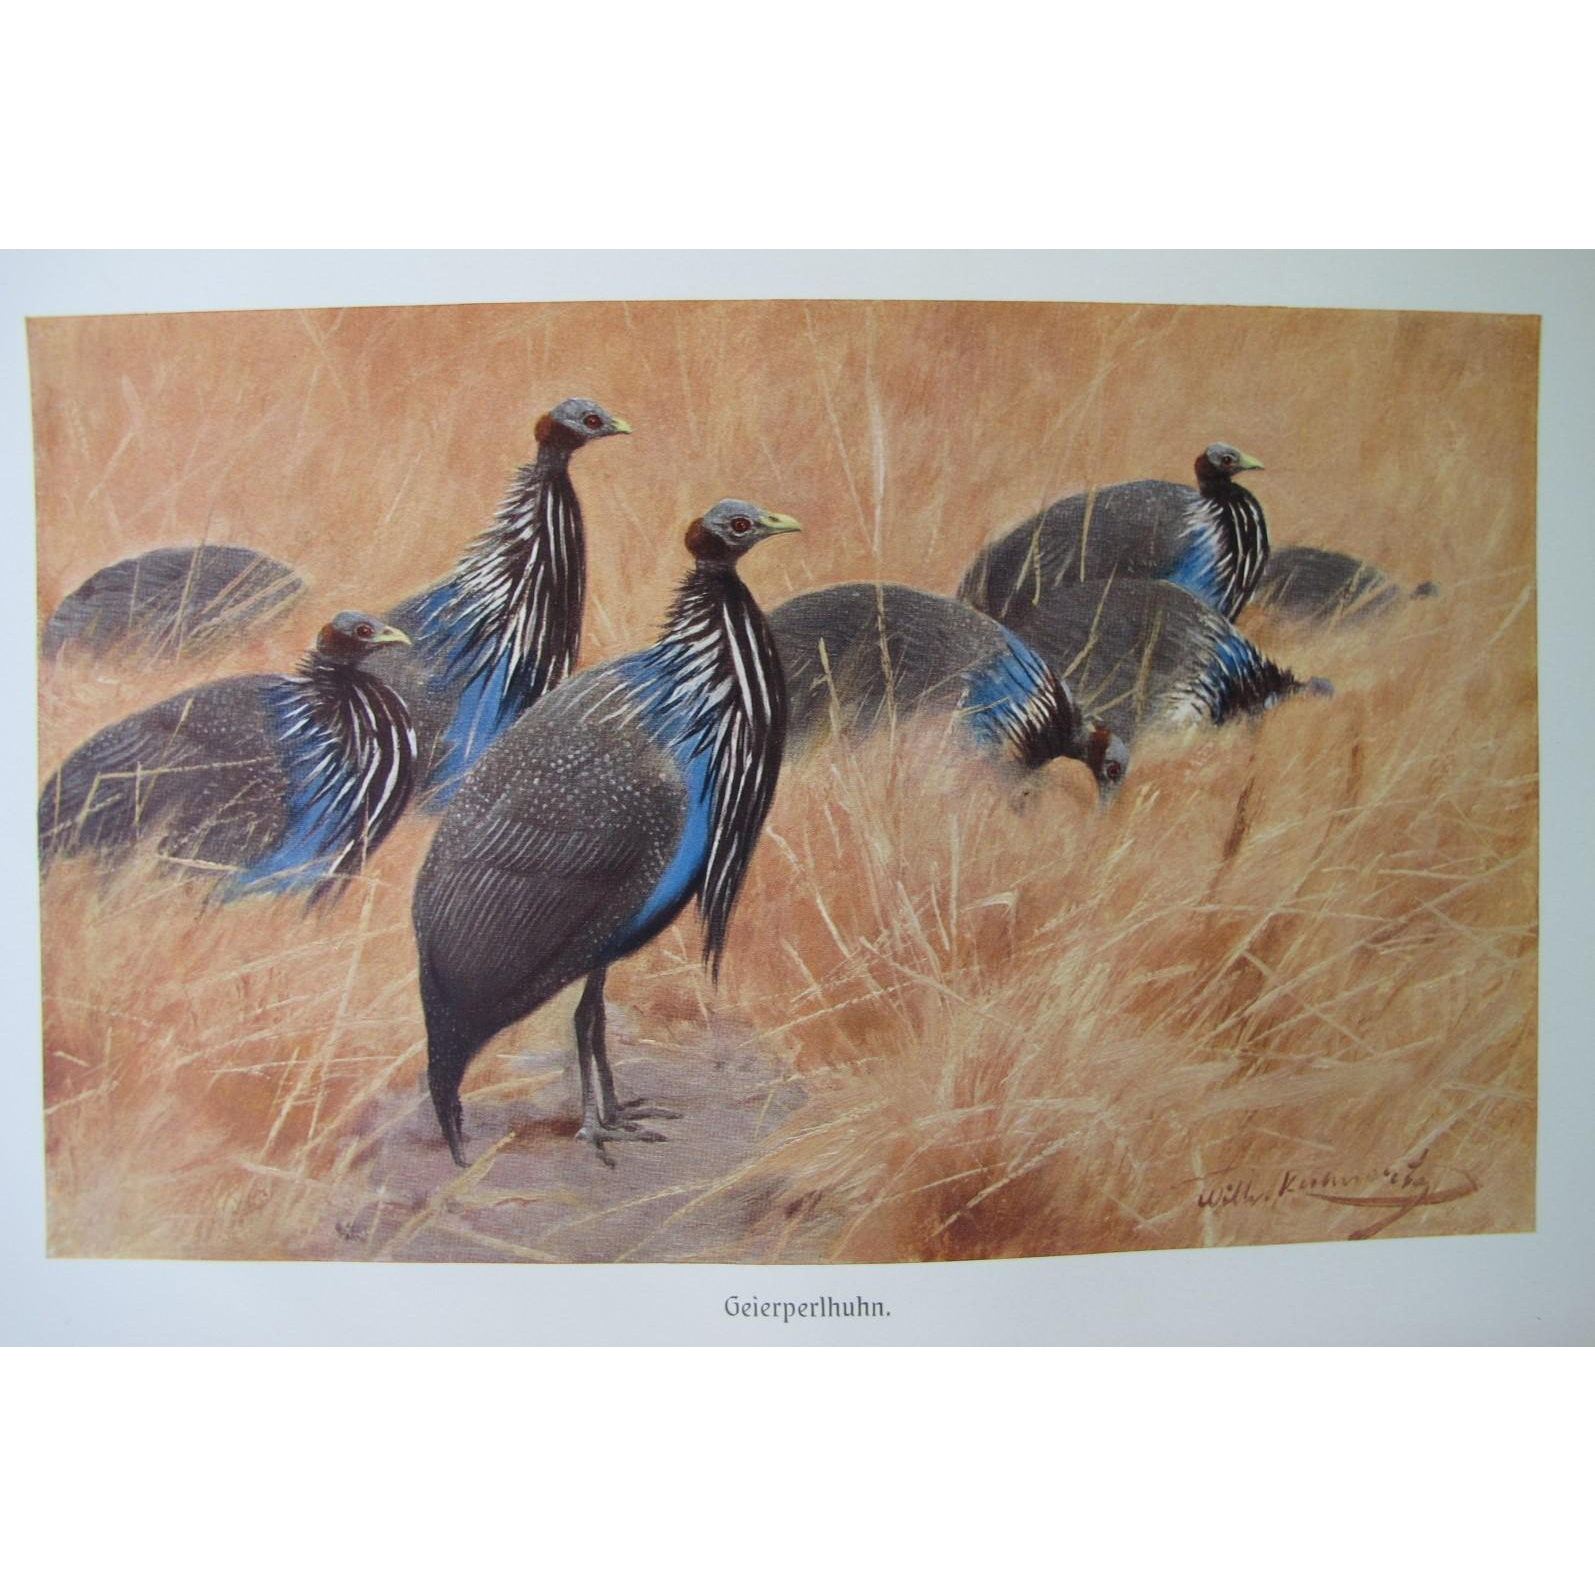 Antique Vulturine Guinea Fowl Litho from Germany